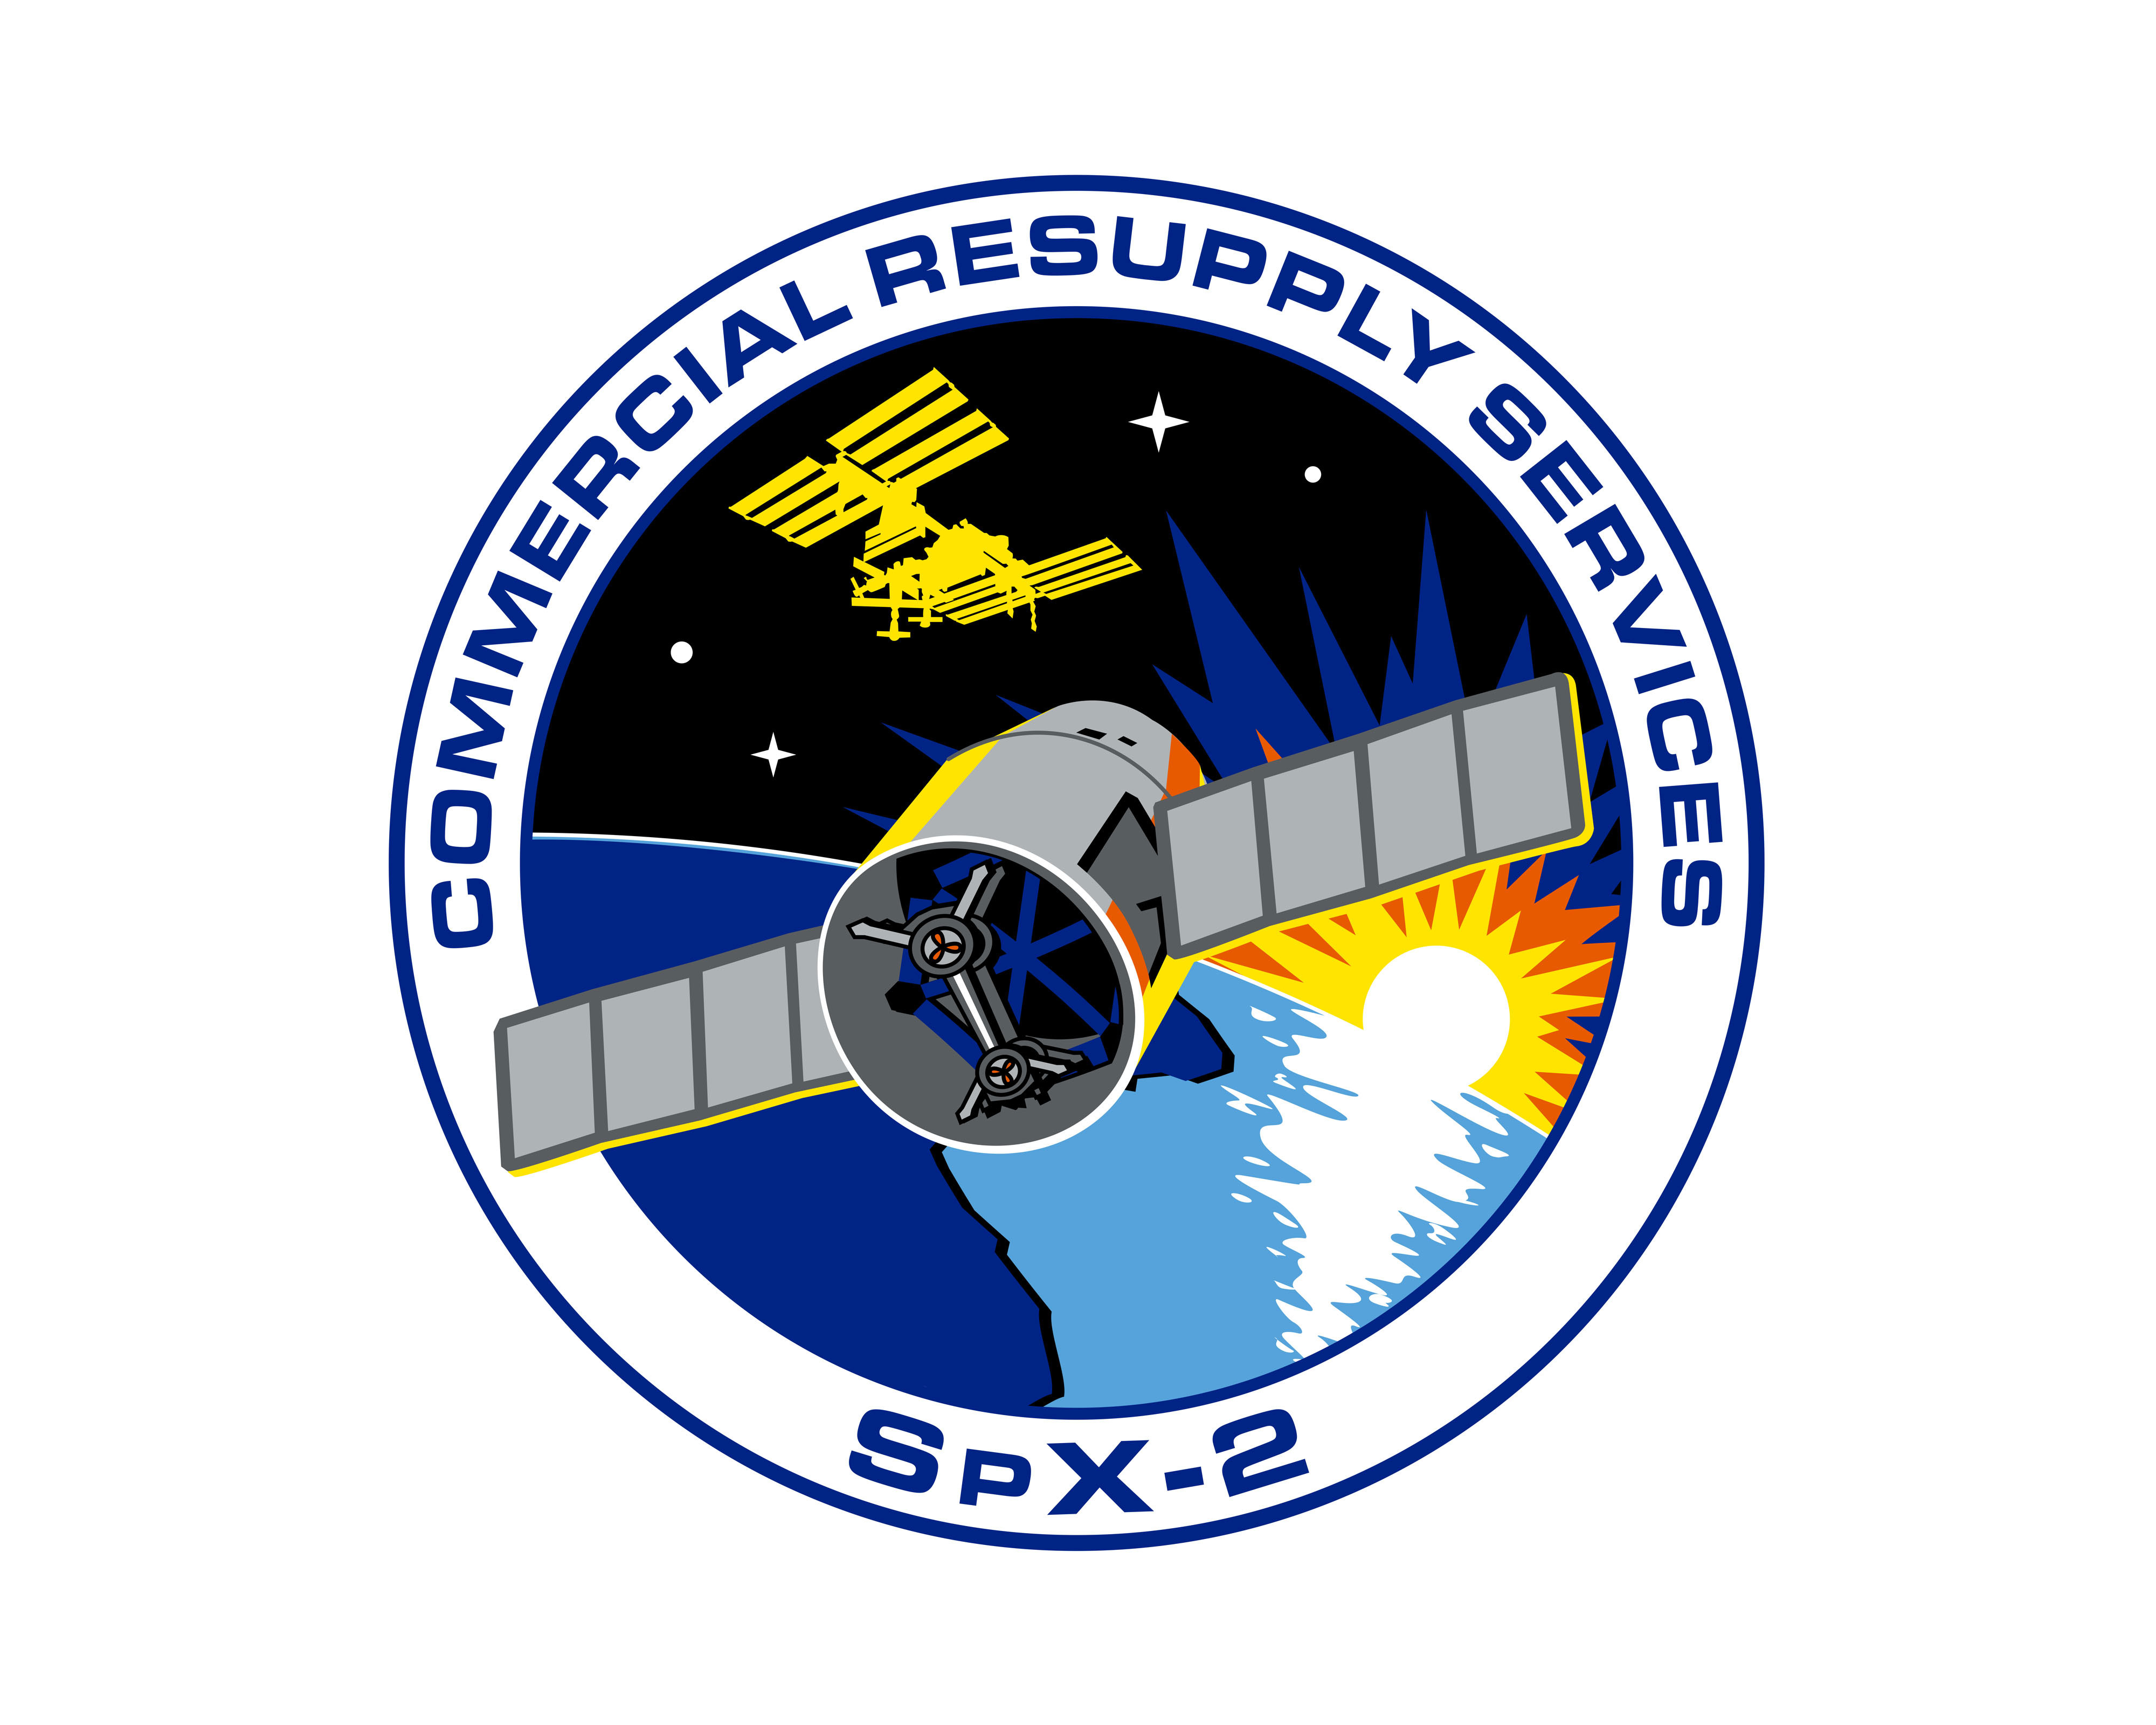 NASA Patches Printable - Pics about space